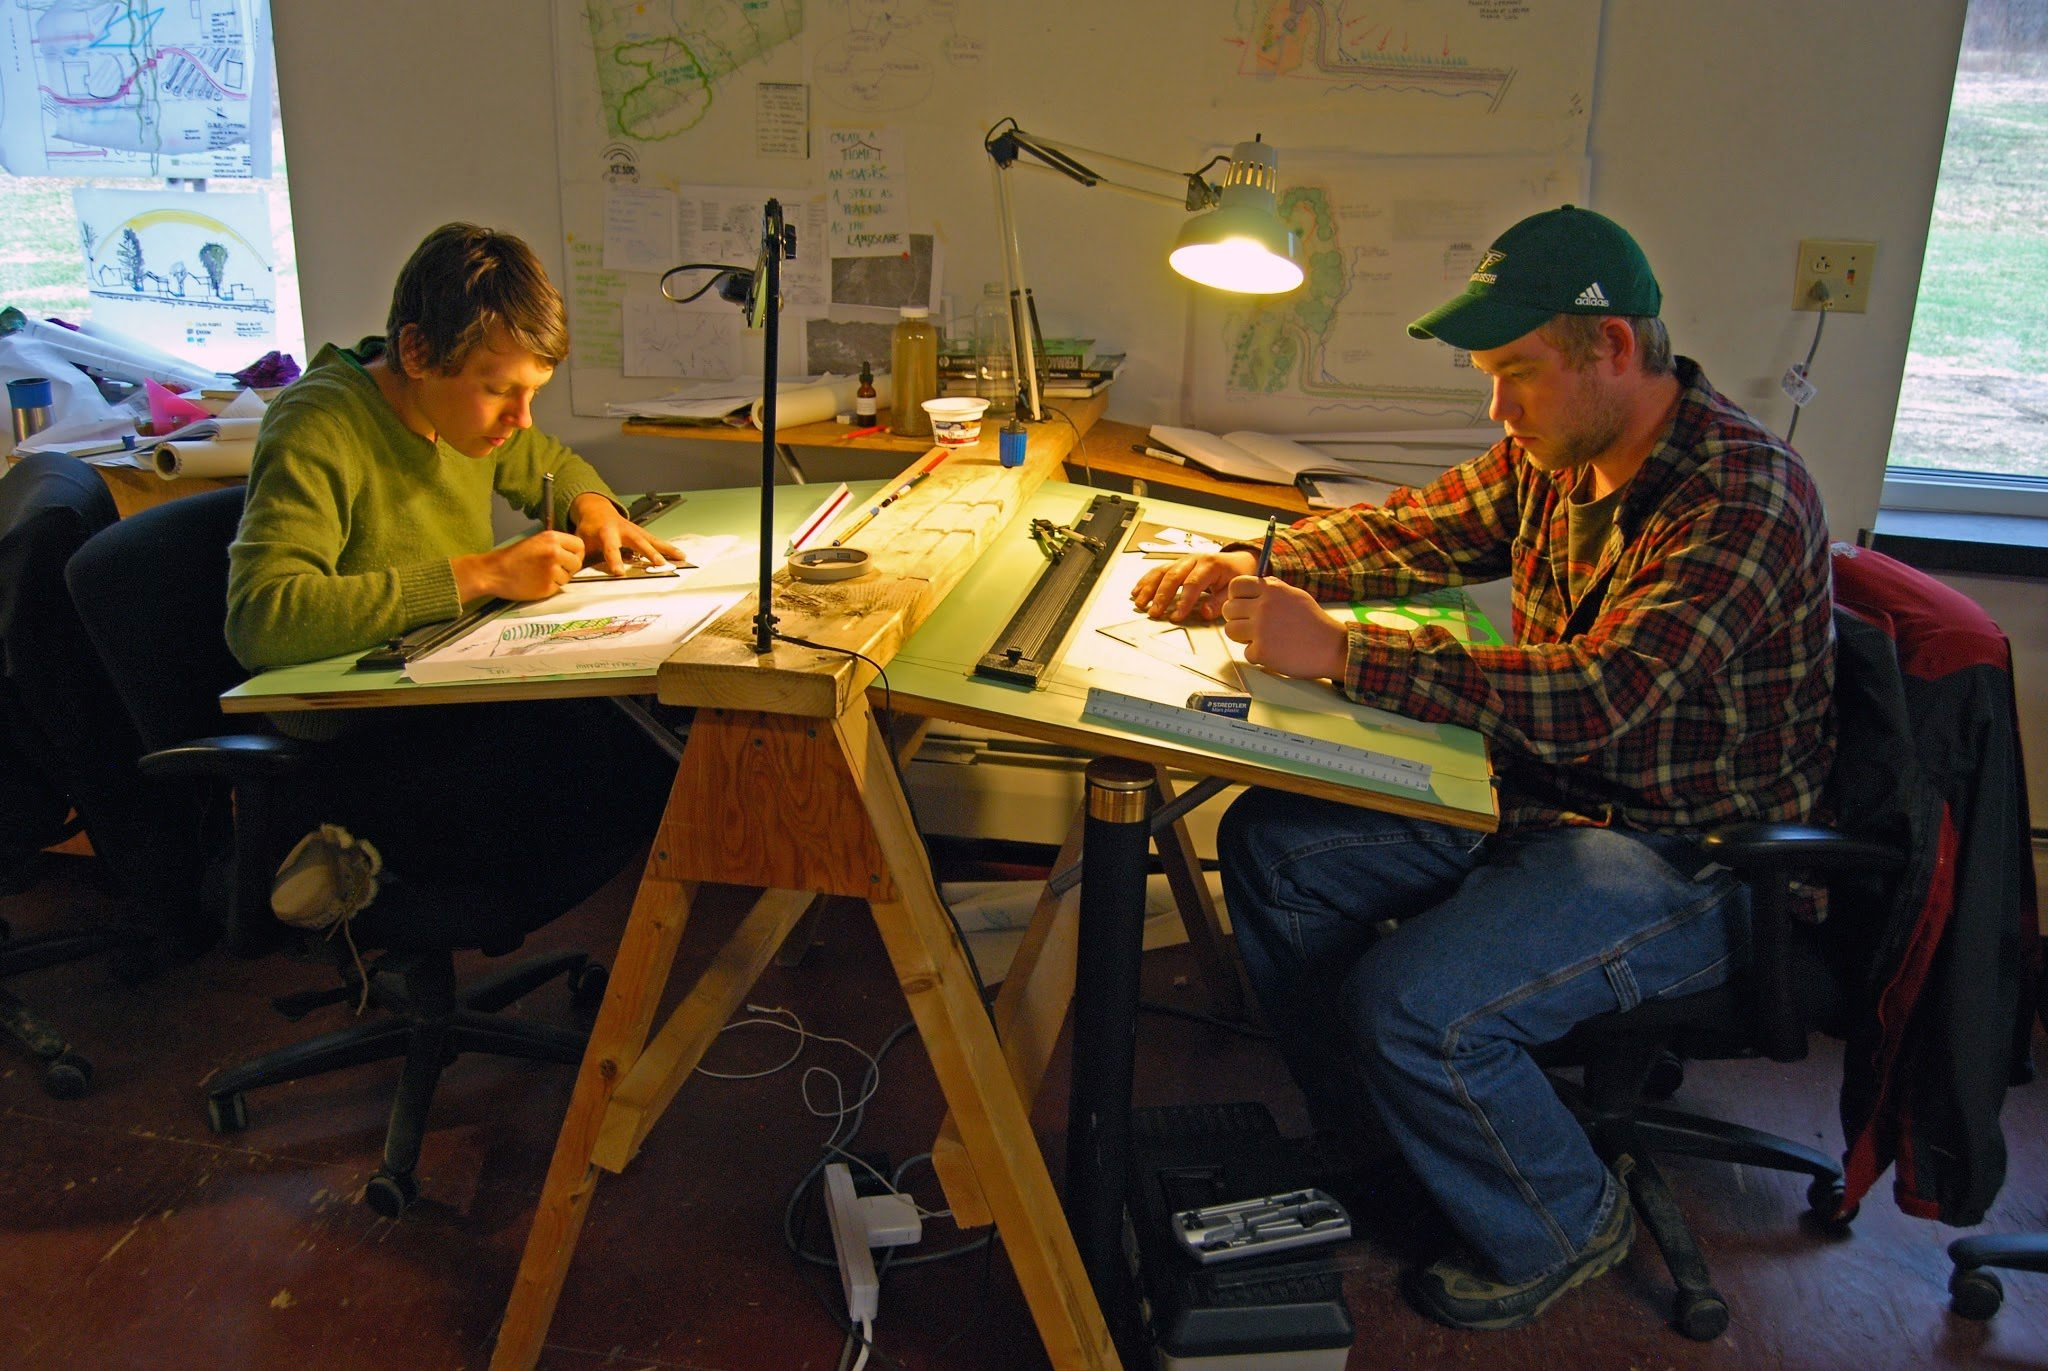 Students in a Yestermorrow studio.